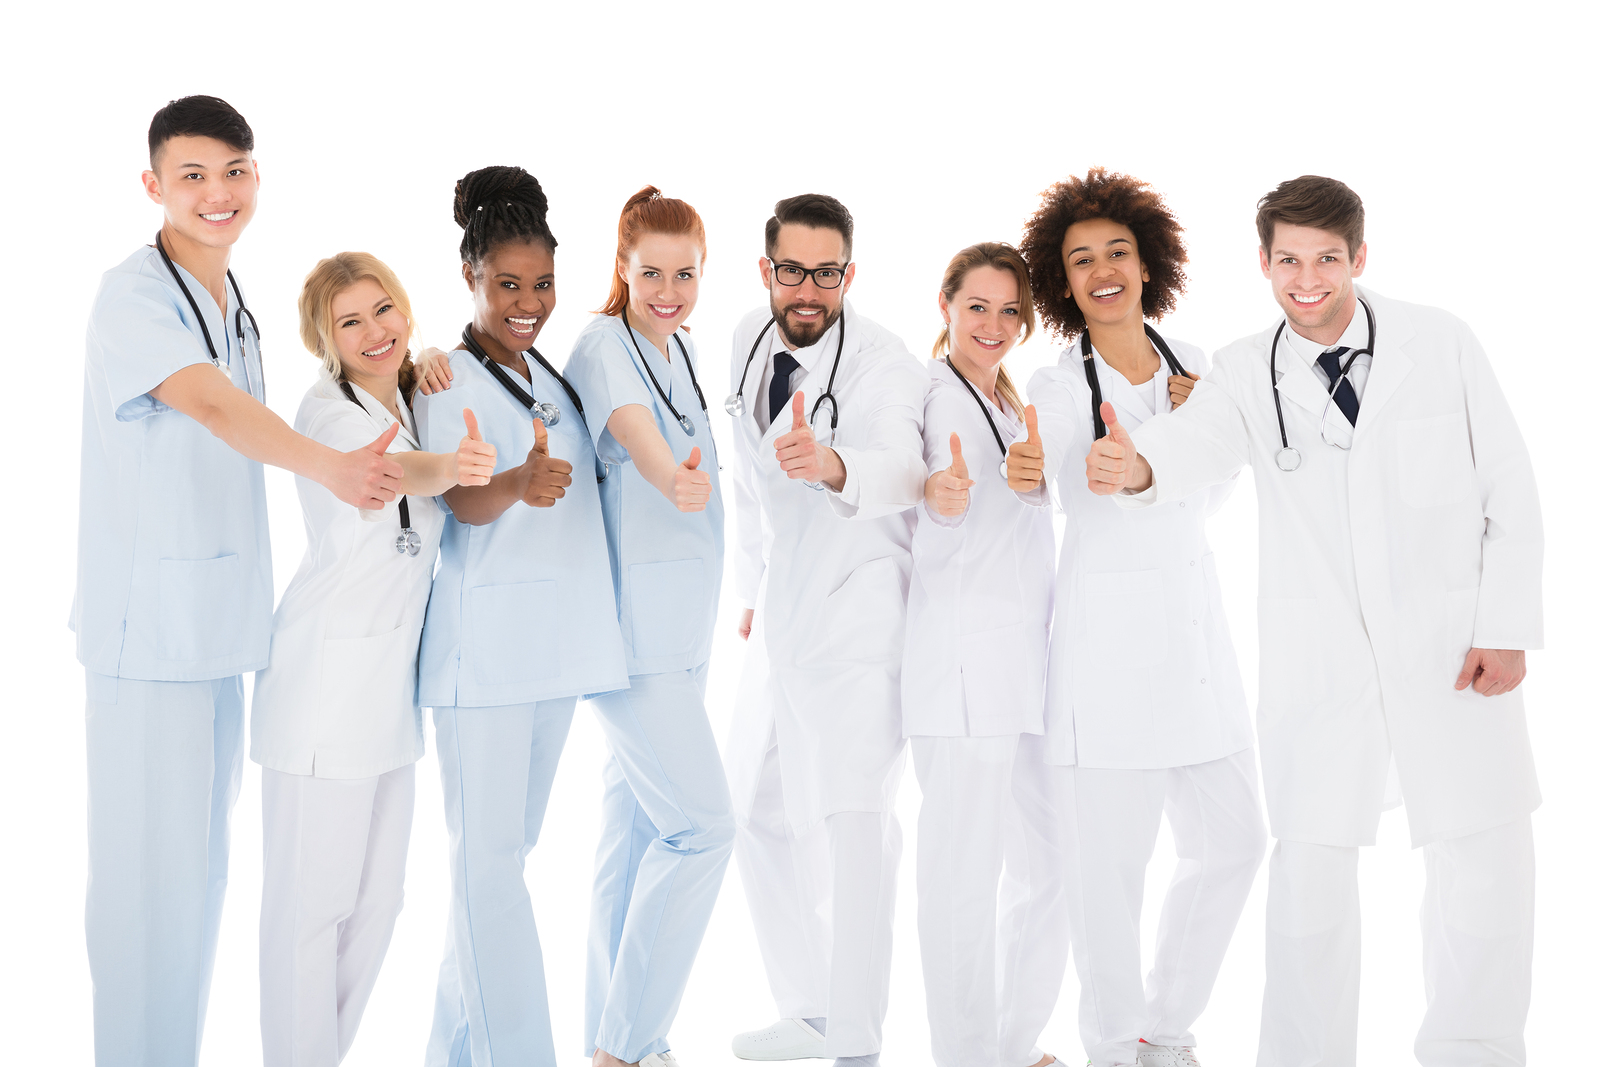 Group Of Medical Team Gesturing Thumbs Up Over White Background